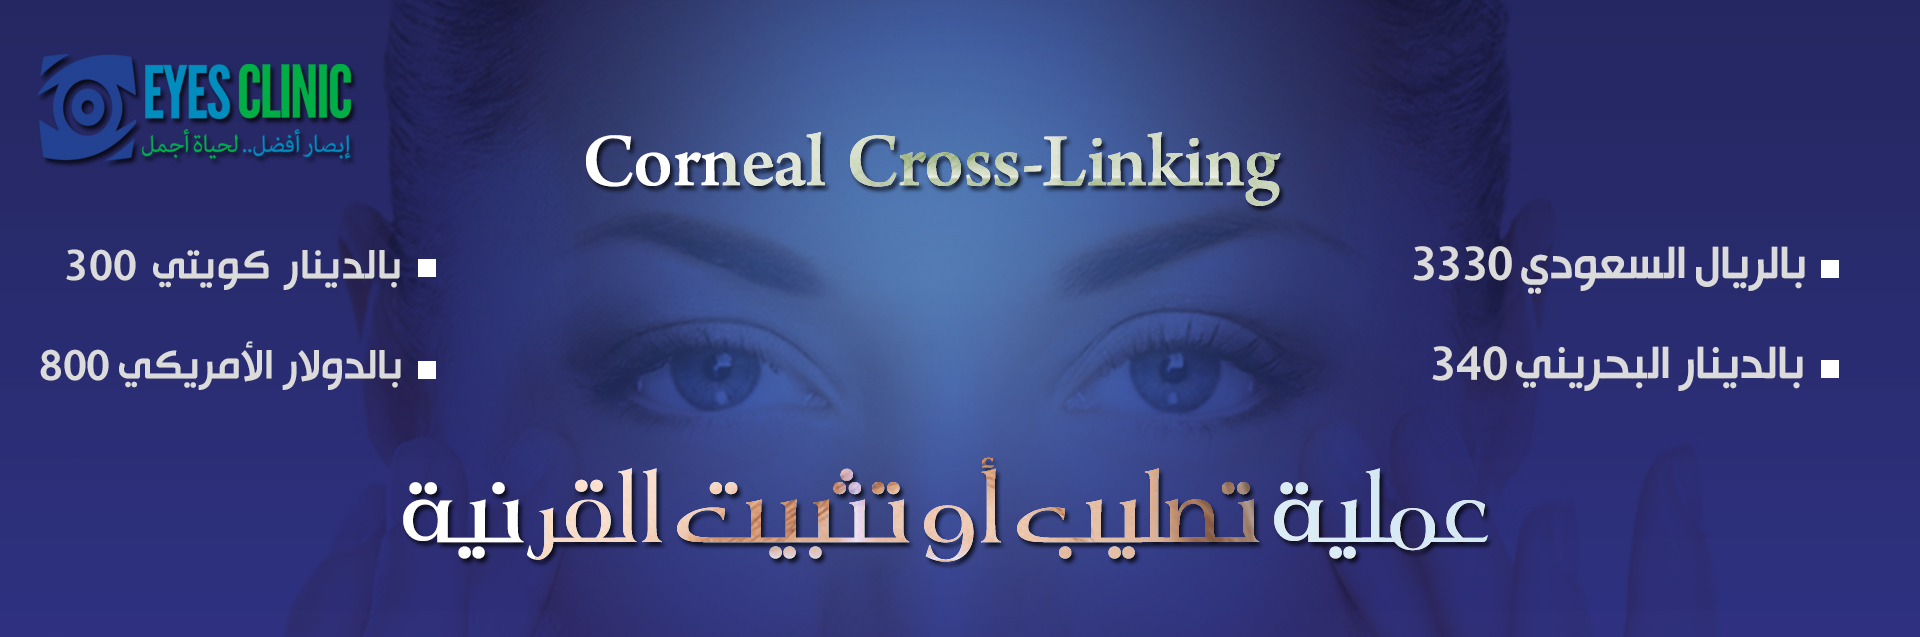 Corneal Cross Linking